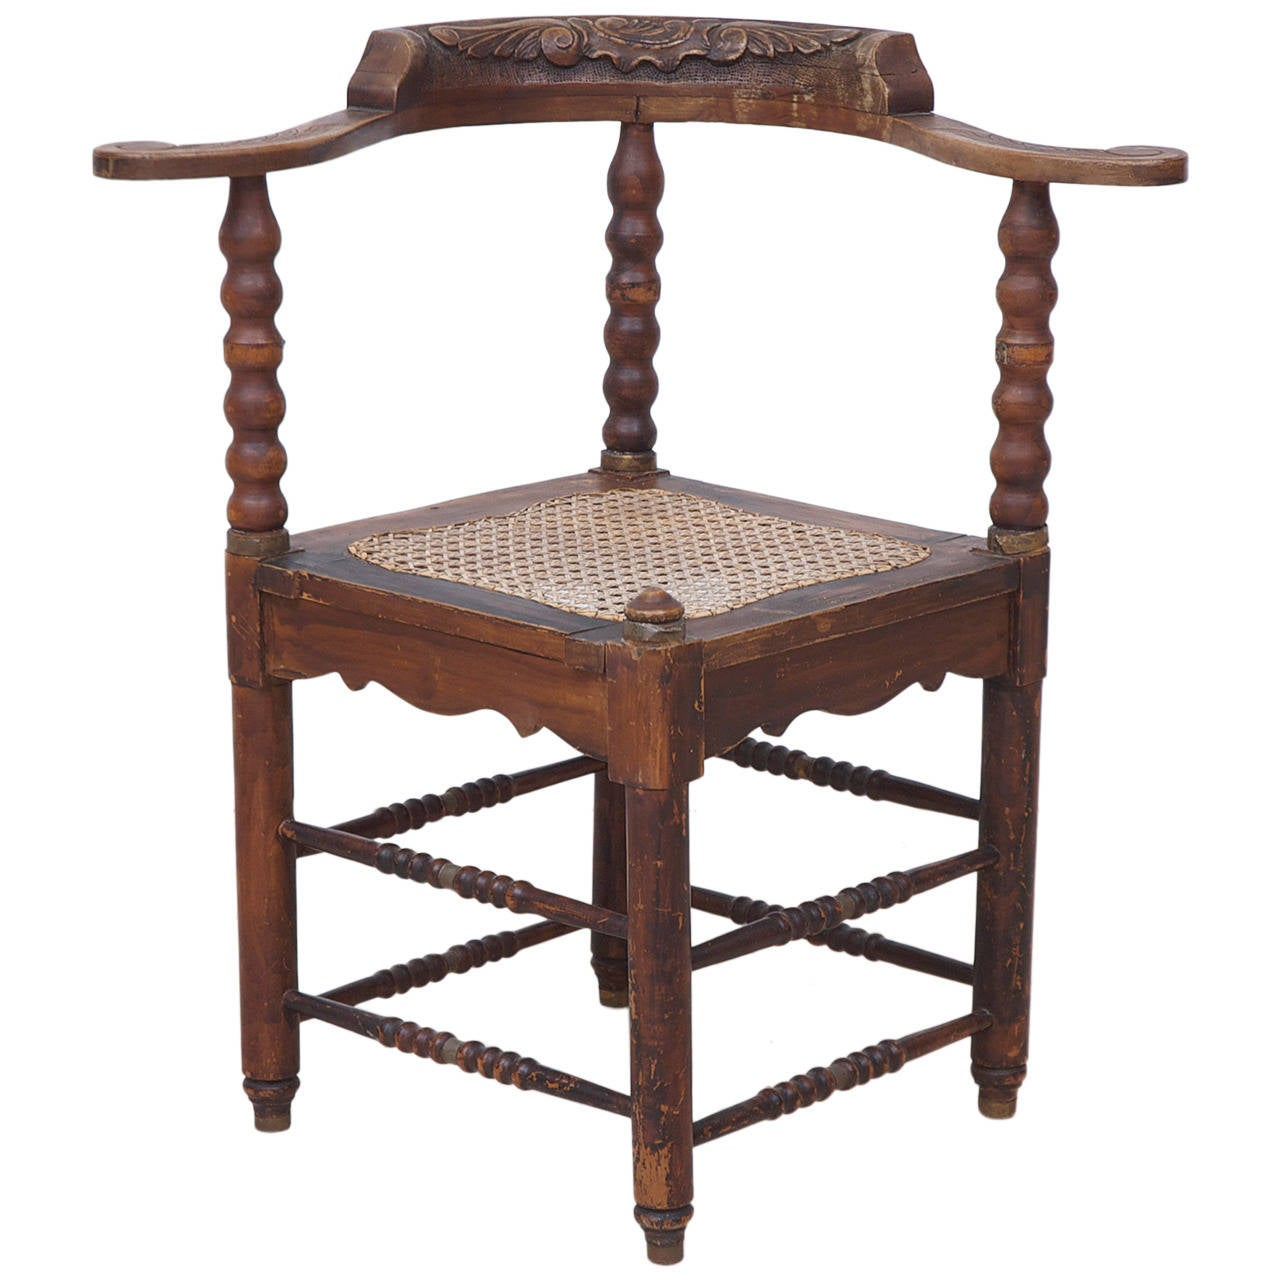 Colonial Chair Dutch Colonial Corner Chair From Suriname For Sale At 1stdibs